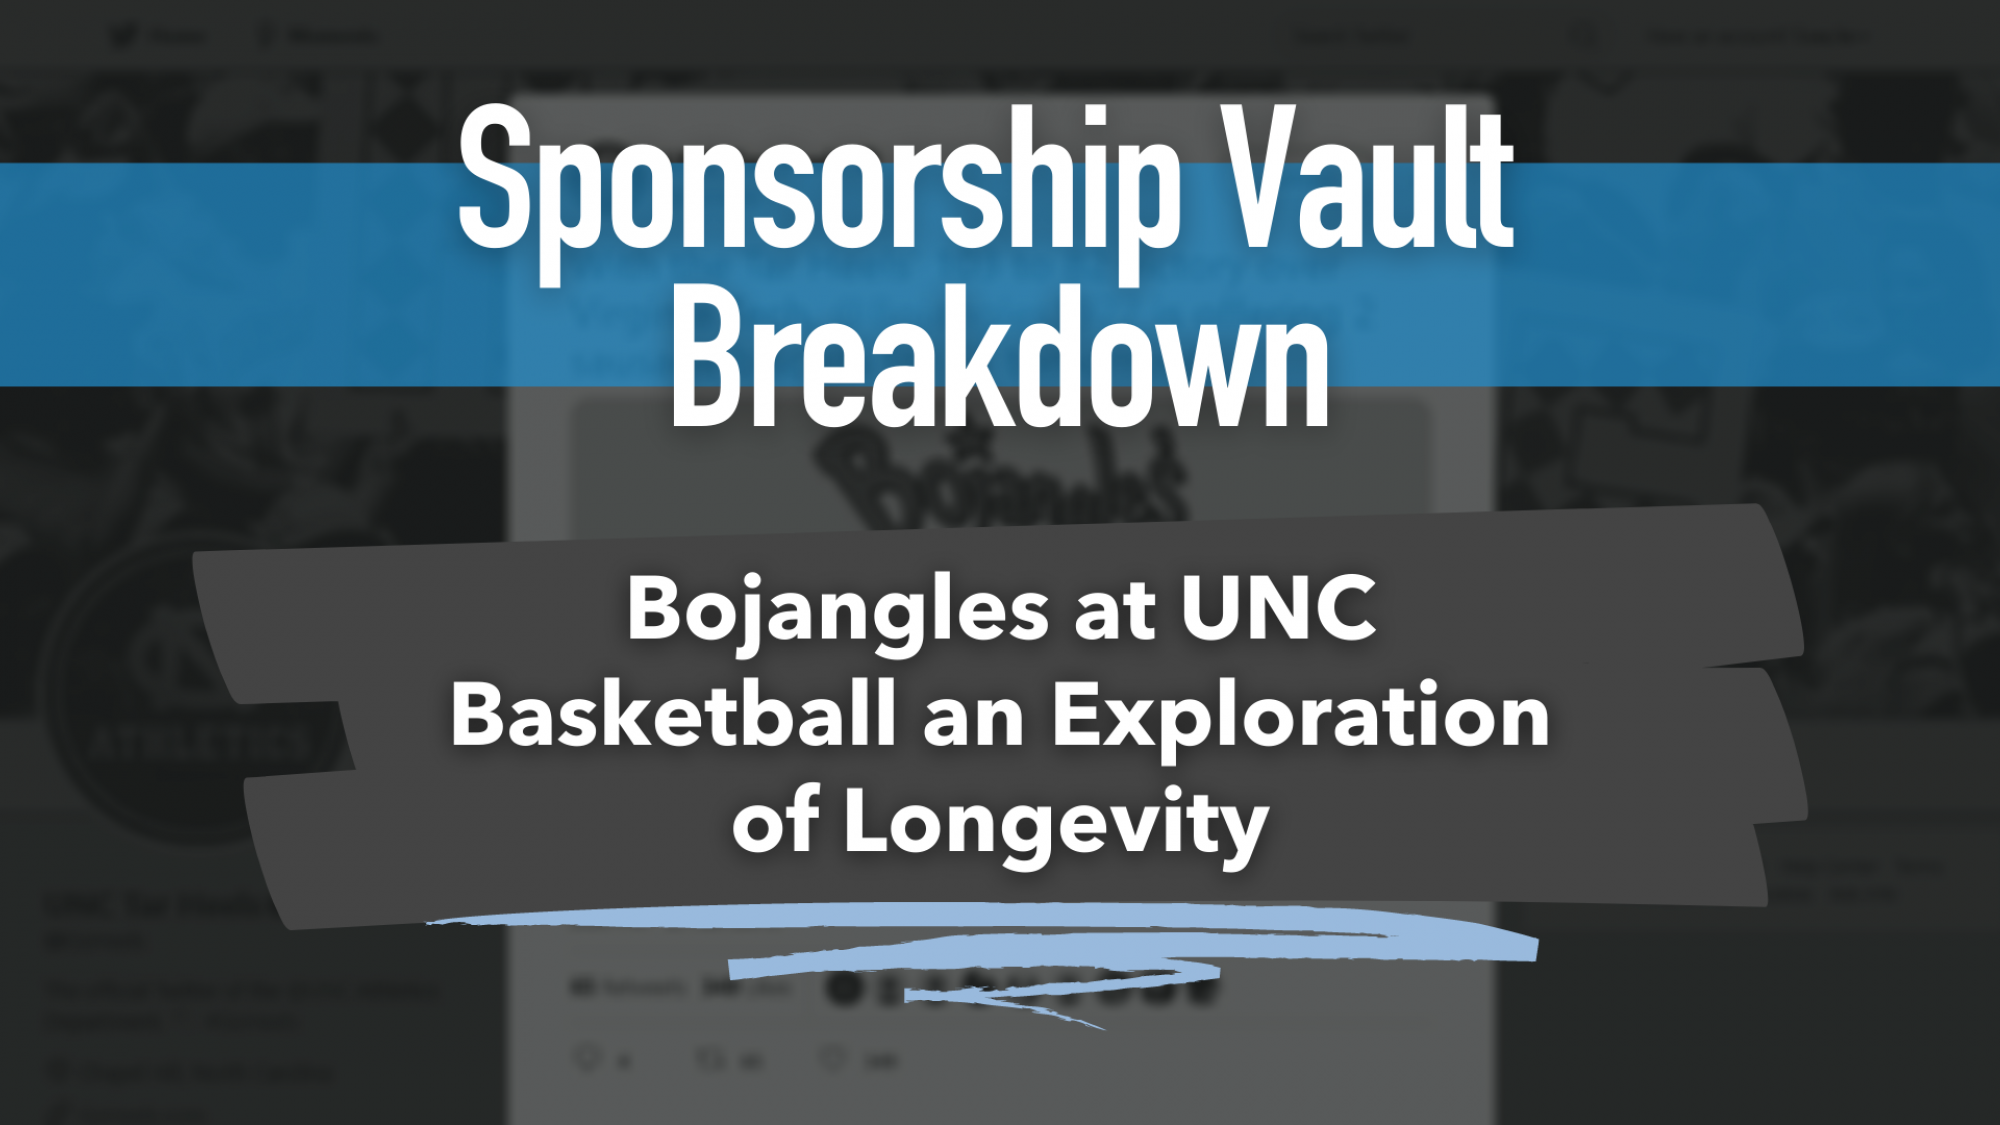 UNC and Bojangles Sponsorship and free biscuits